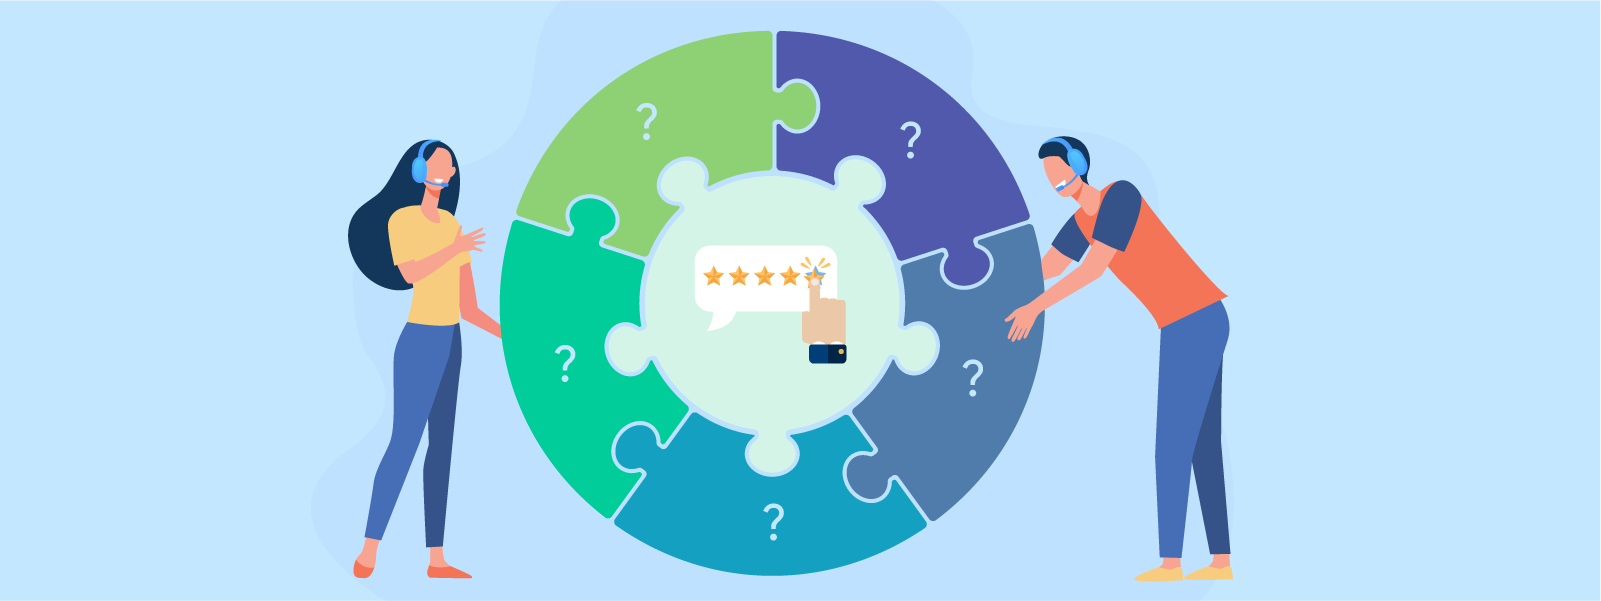 Customer experience questions